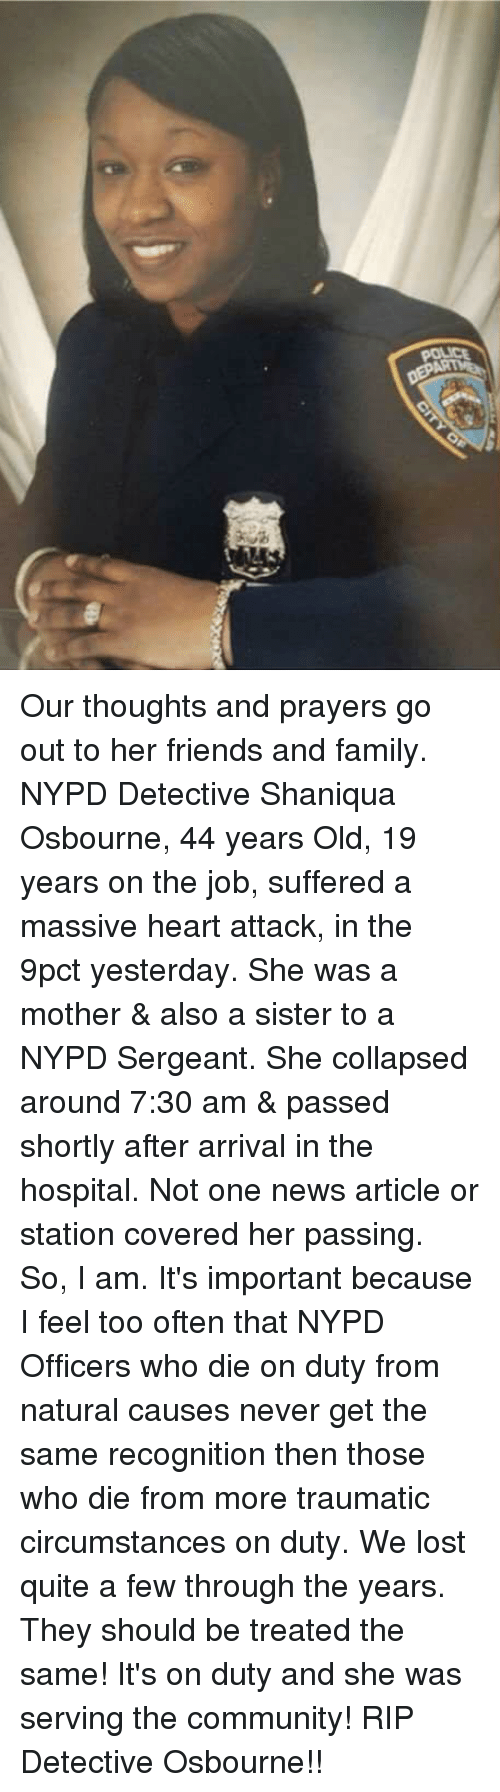 Memes, 🤖, and Job: Our thoughts and prayers go out to her friends and family. NYPD Detective Shaniqua Osbourne, 44 years Old, 19 years on the job, suffered a massive heart attack, in the 9pct yesterday. She was a mother & also a sister to a NYPD Sergeant. She collapsed around 7:30 am & passed shortly after arrival in the hospital. Not one news article or station covered her passing. So, I am. It's important because I feel too often that NYPD Officers who die on duty from natural causes never get the same recognition then those who die from more traumatic circumstances on duty. We lost quite a few through the years. They should be treated the same! It's on duty and she was serving the community! RIP Detective Osbourne!!